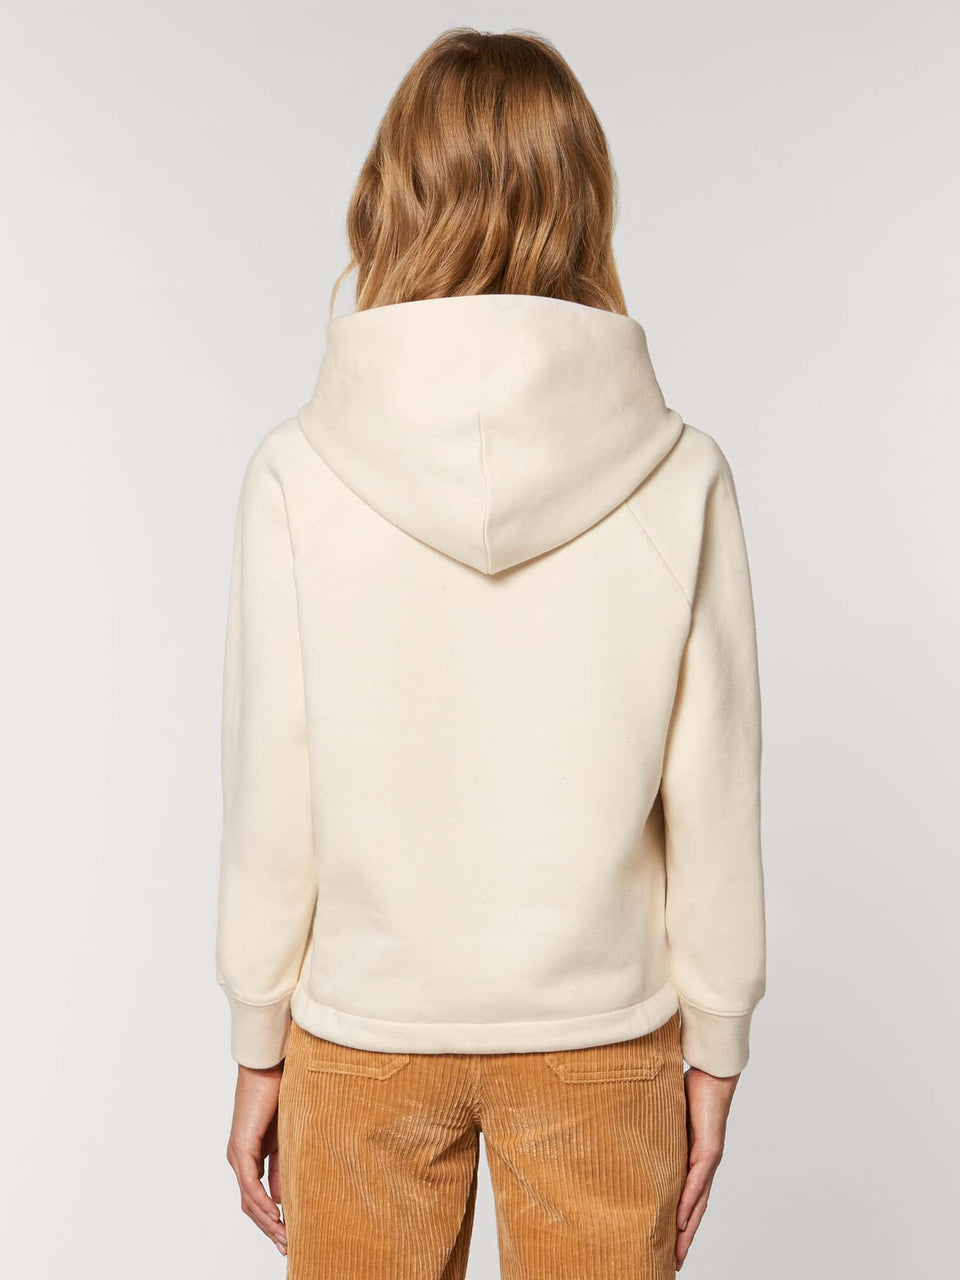 Bufo Alvarius Made To Order Women Cropped Hoodie Sweatshirt - Natural Raw